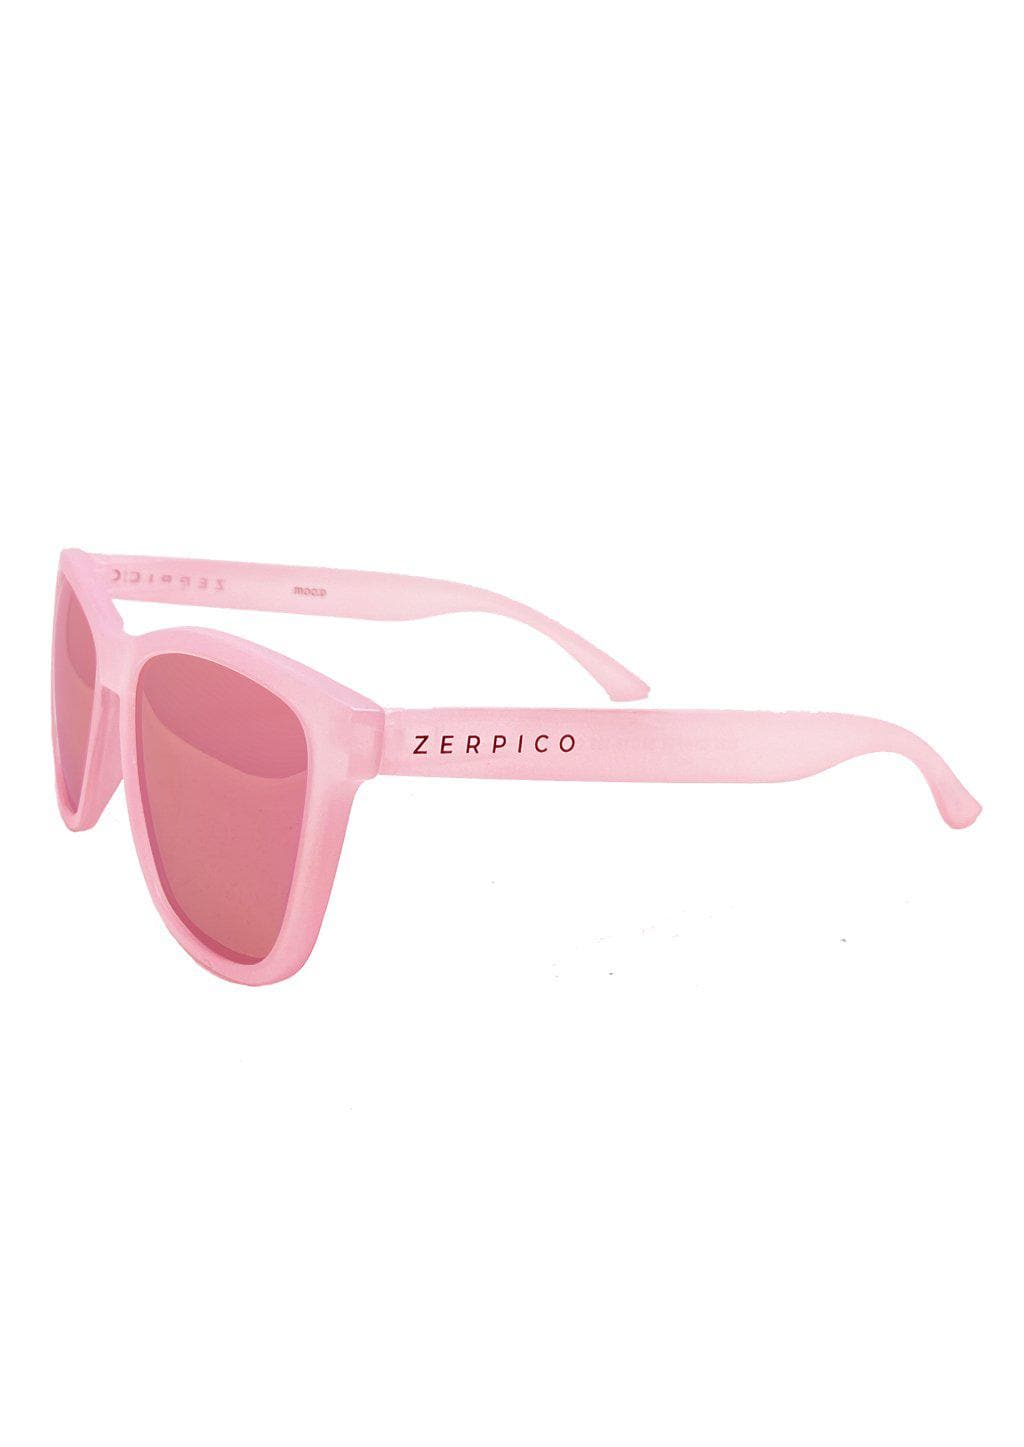 Our Mood V2 is an improved version of our last wayfarers. Plastic body for great quality and durabilty. This is Flamingo with a pink transparent frame and pink mirror lenses. Studio shoot from the side.